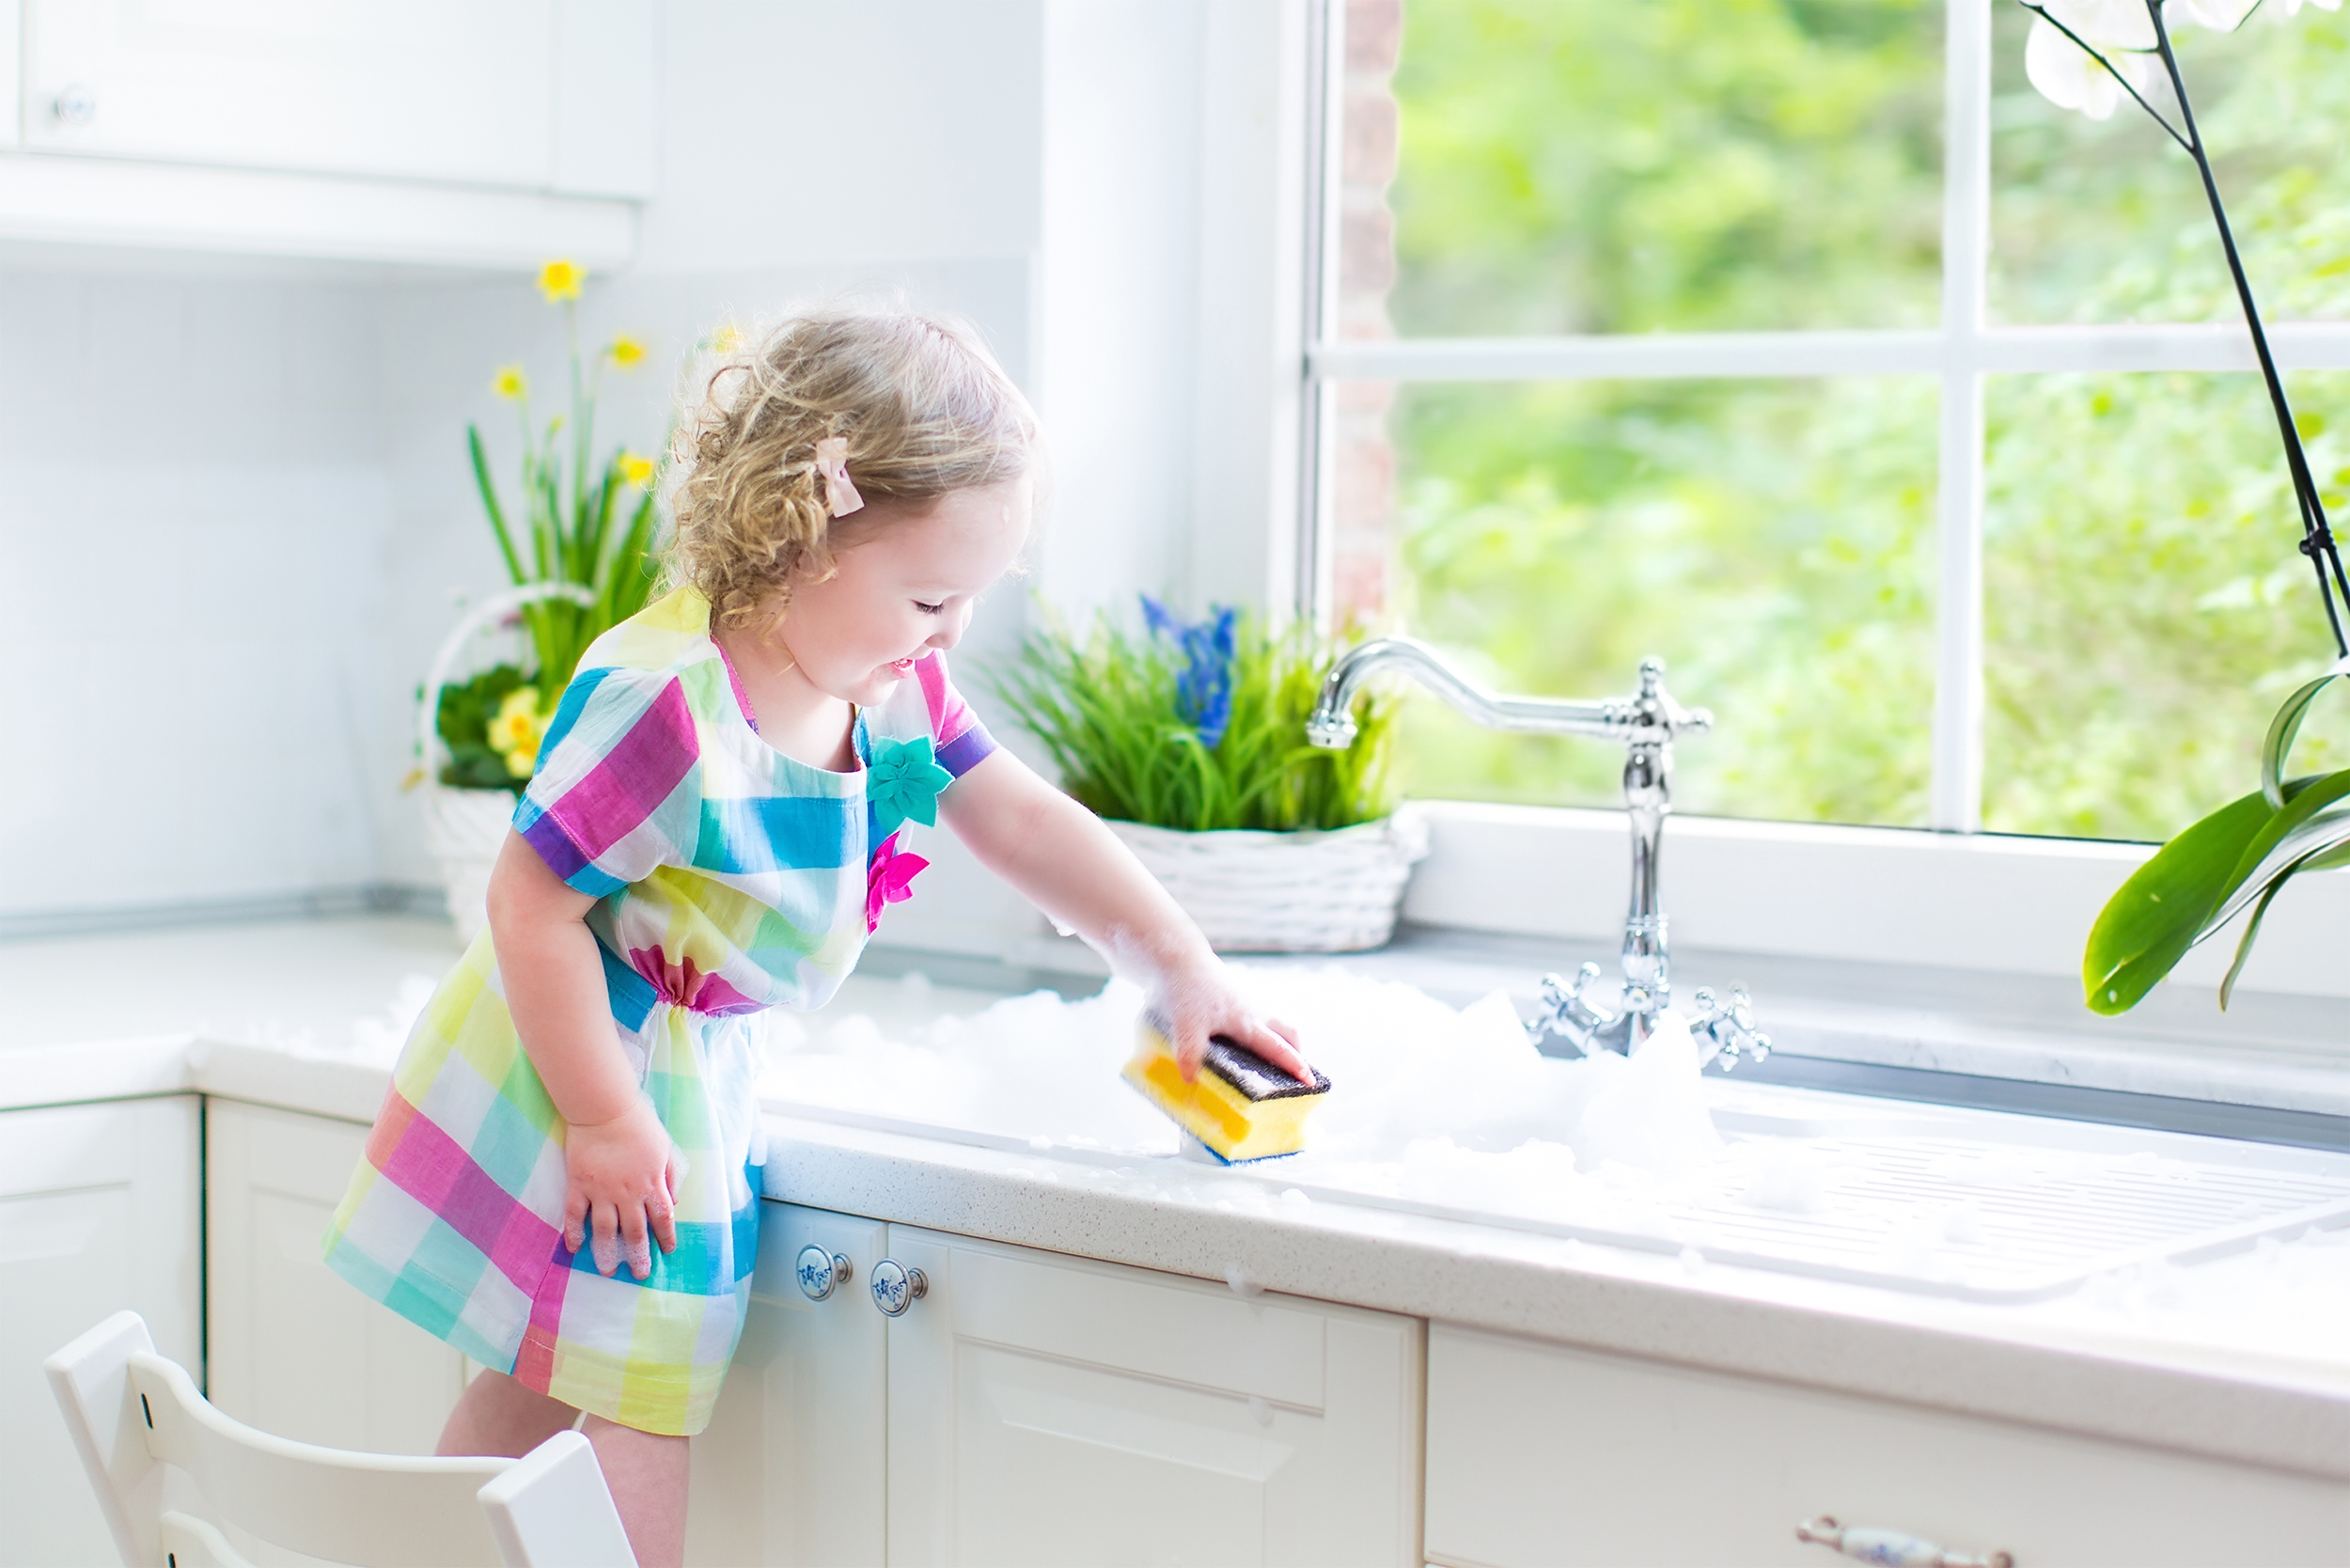 girl-cleaning-near-sink